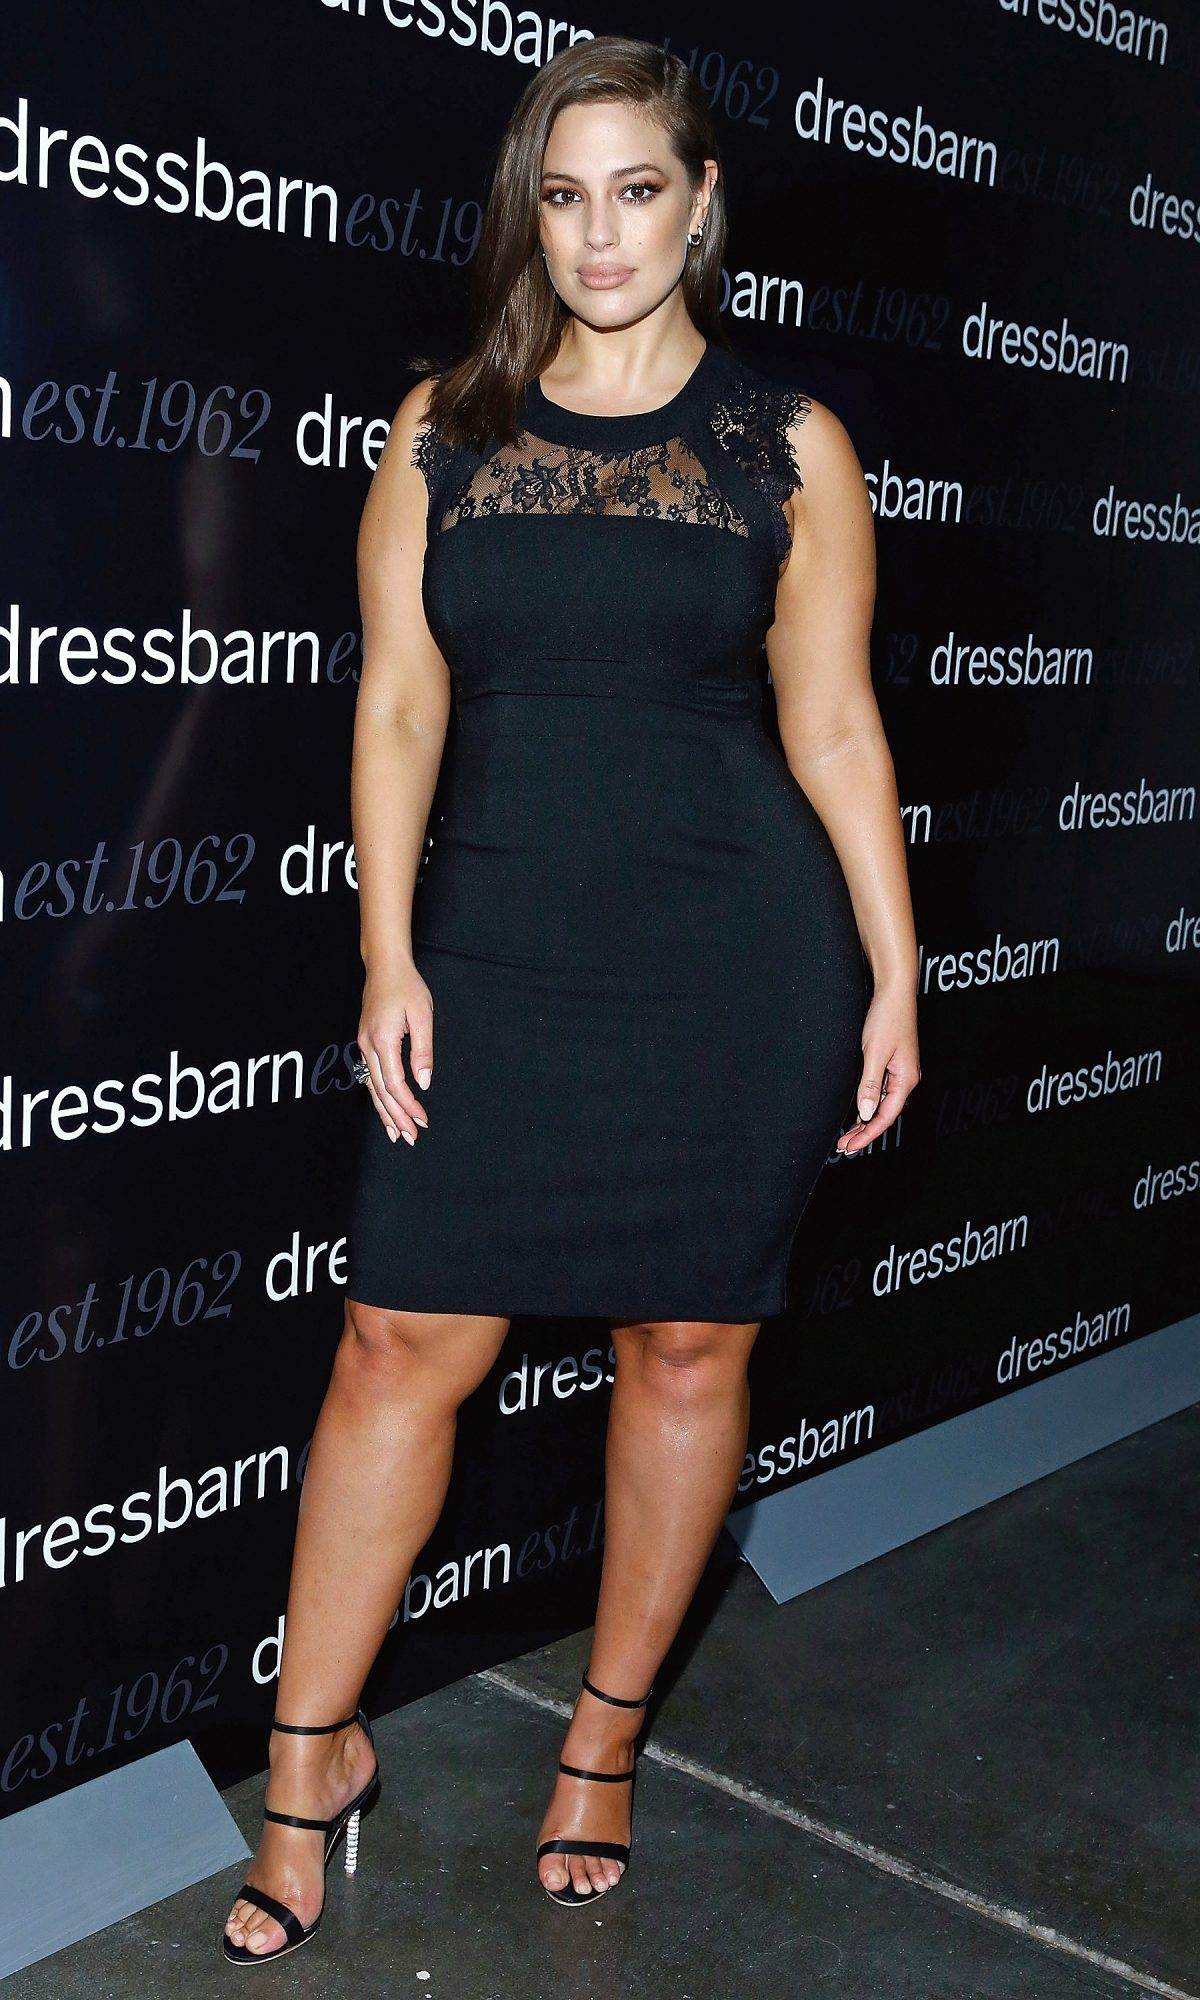 2016 Dressbarn Fall Campaign Launch With Ashley Graham